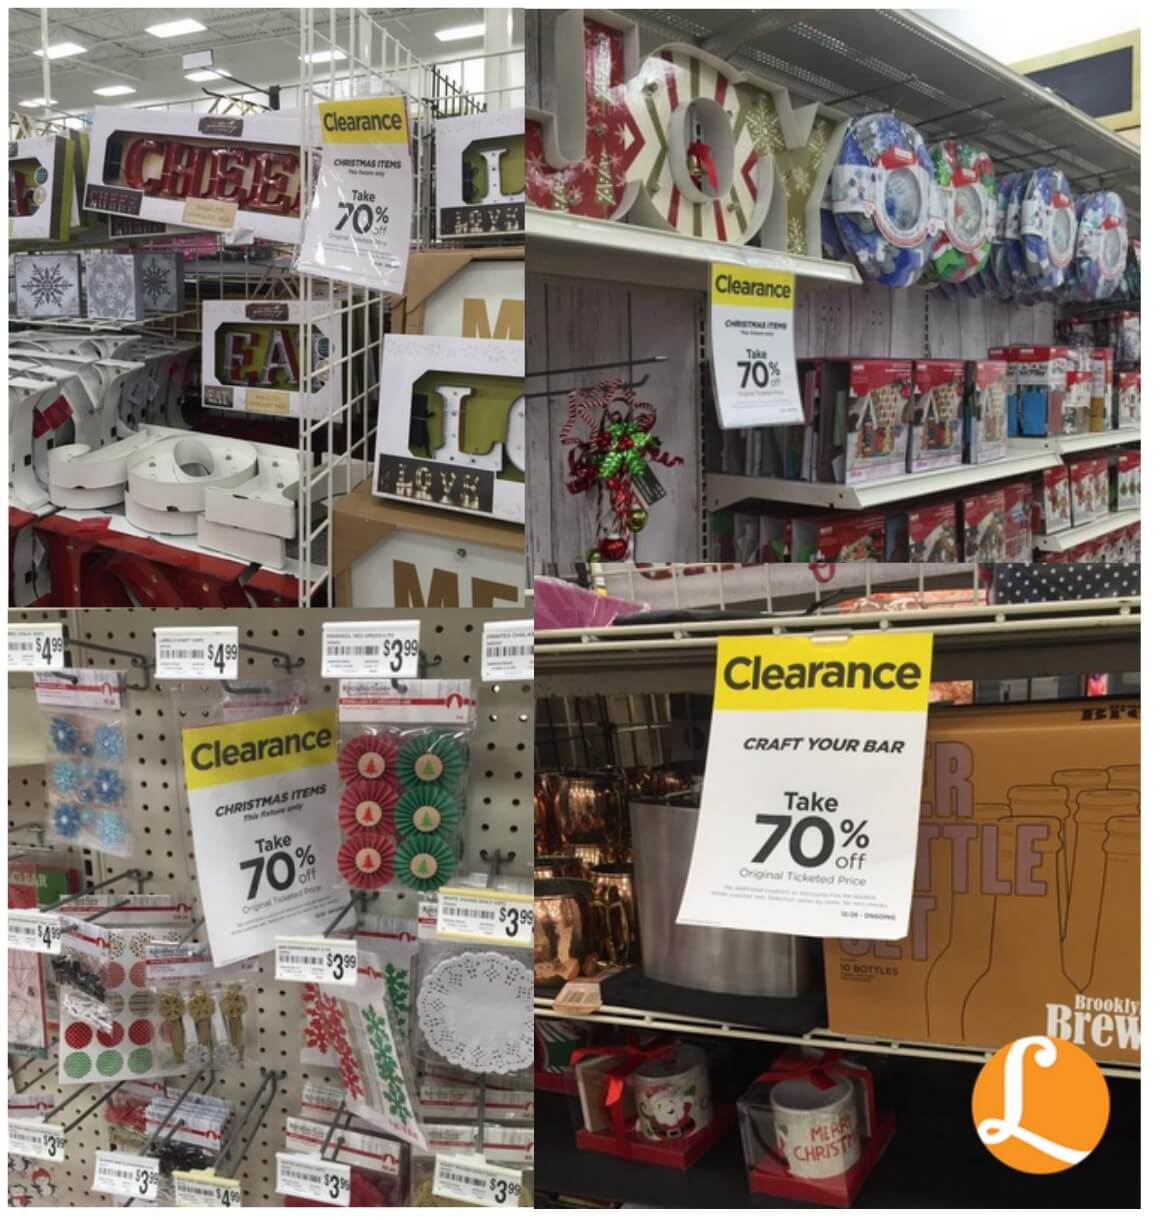 Michaels Rewards Coupons. Sign in in to Michaels Rewards Not a member? Sign Up for free. Save money for your business by using your tax exempt or reseller ID. Shop wholesale at Darice. See How. Get the latest on trends, deals and promotions. Enter Email Address Sign Up. Connect with us. Facebook. Instagram.